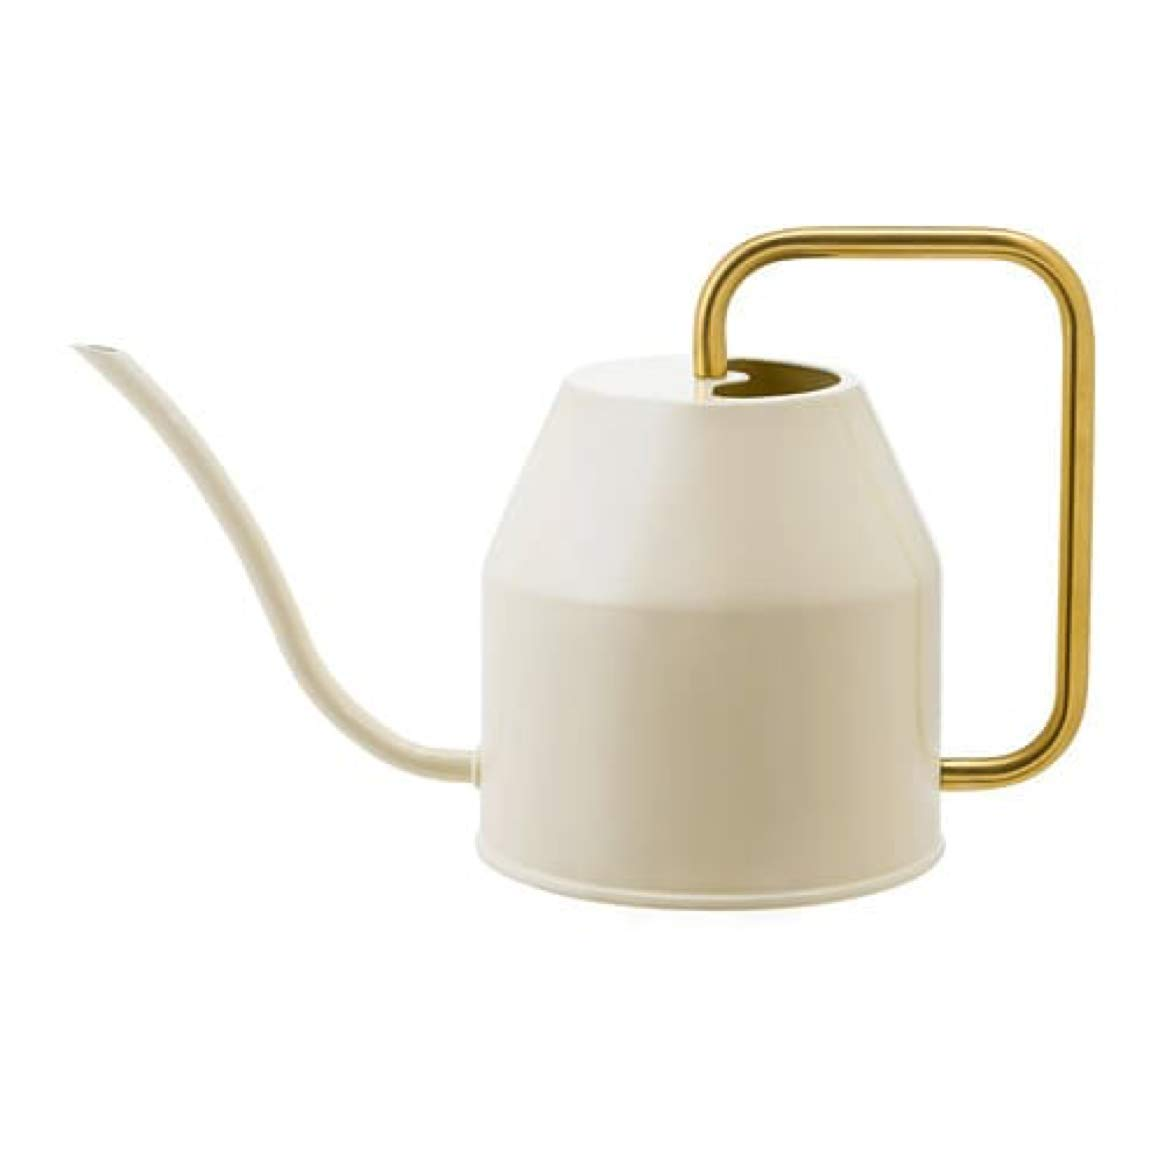 2 Pack IKEA Vattenkrasse Watering Can Ivory Gold 403.941.18 Size 30 oz